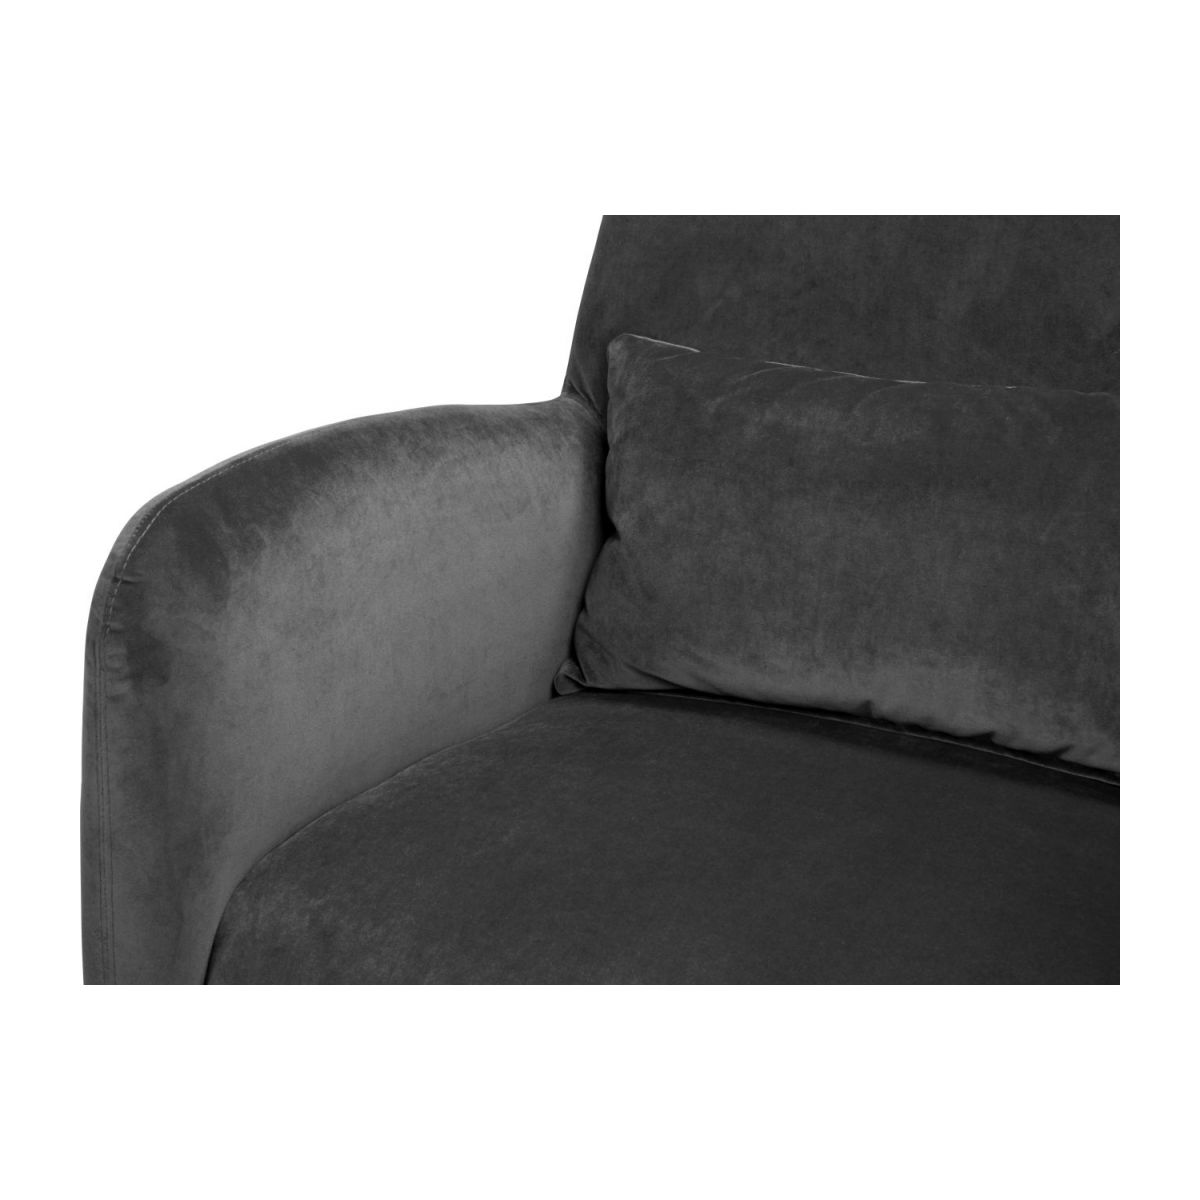 Velvet armchair, grey n°7